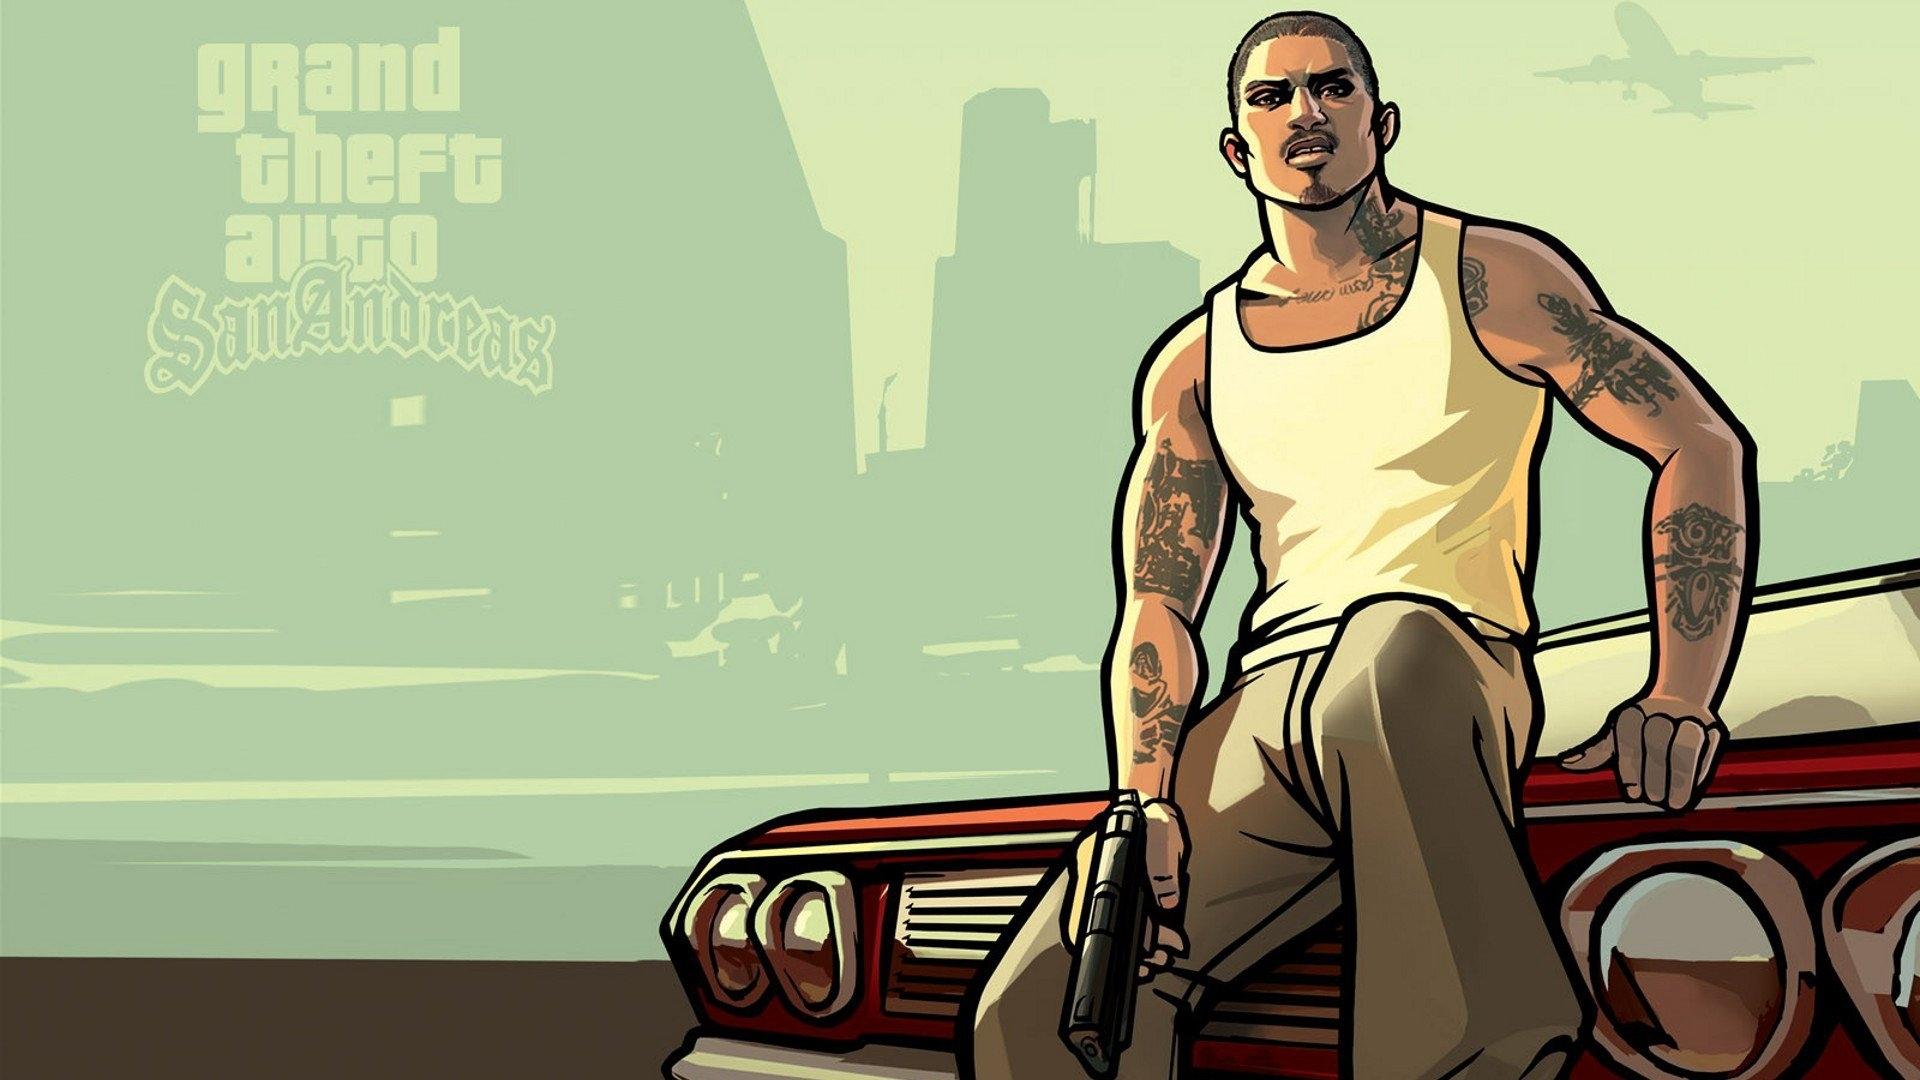 grand theft auto: san andreas full hd fond d'écran and arrière-plan